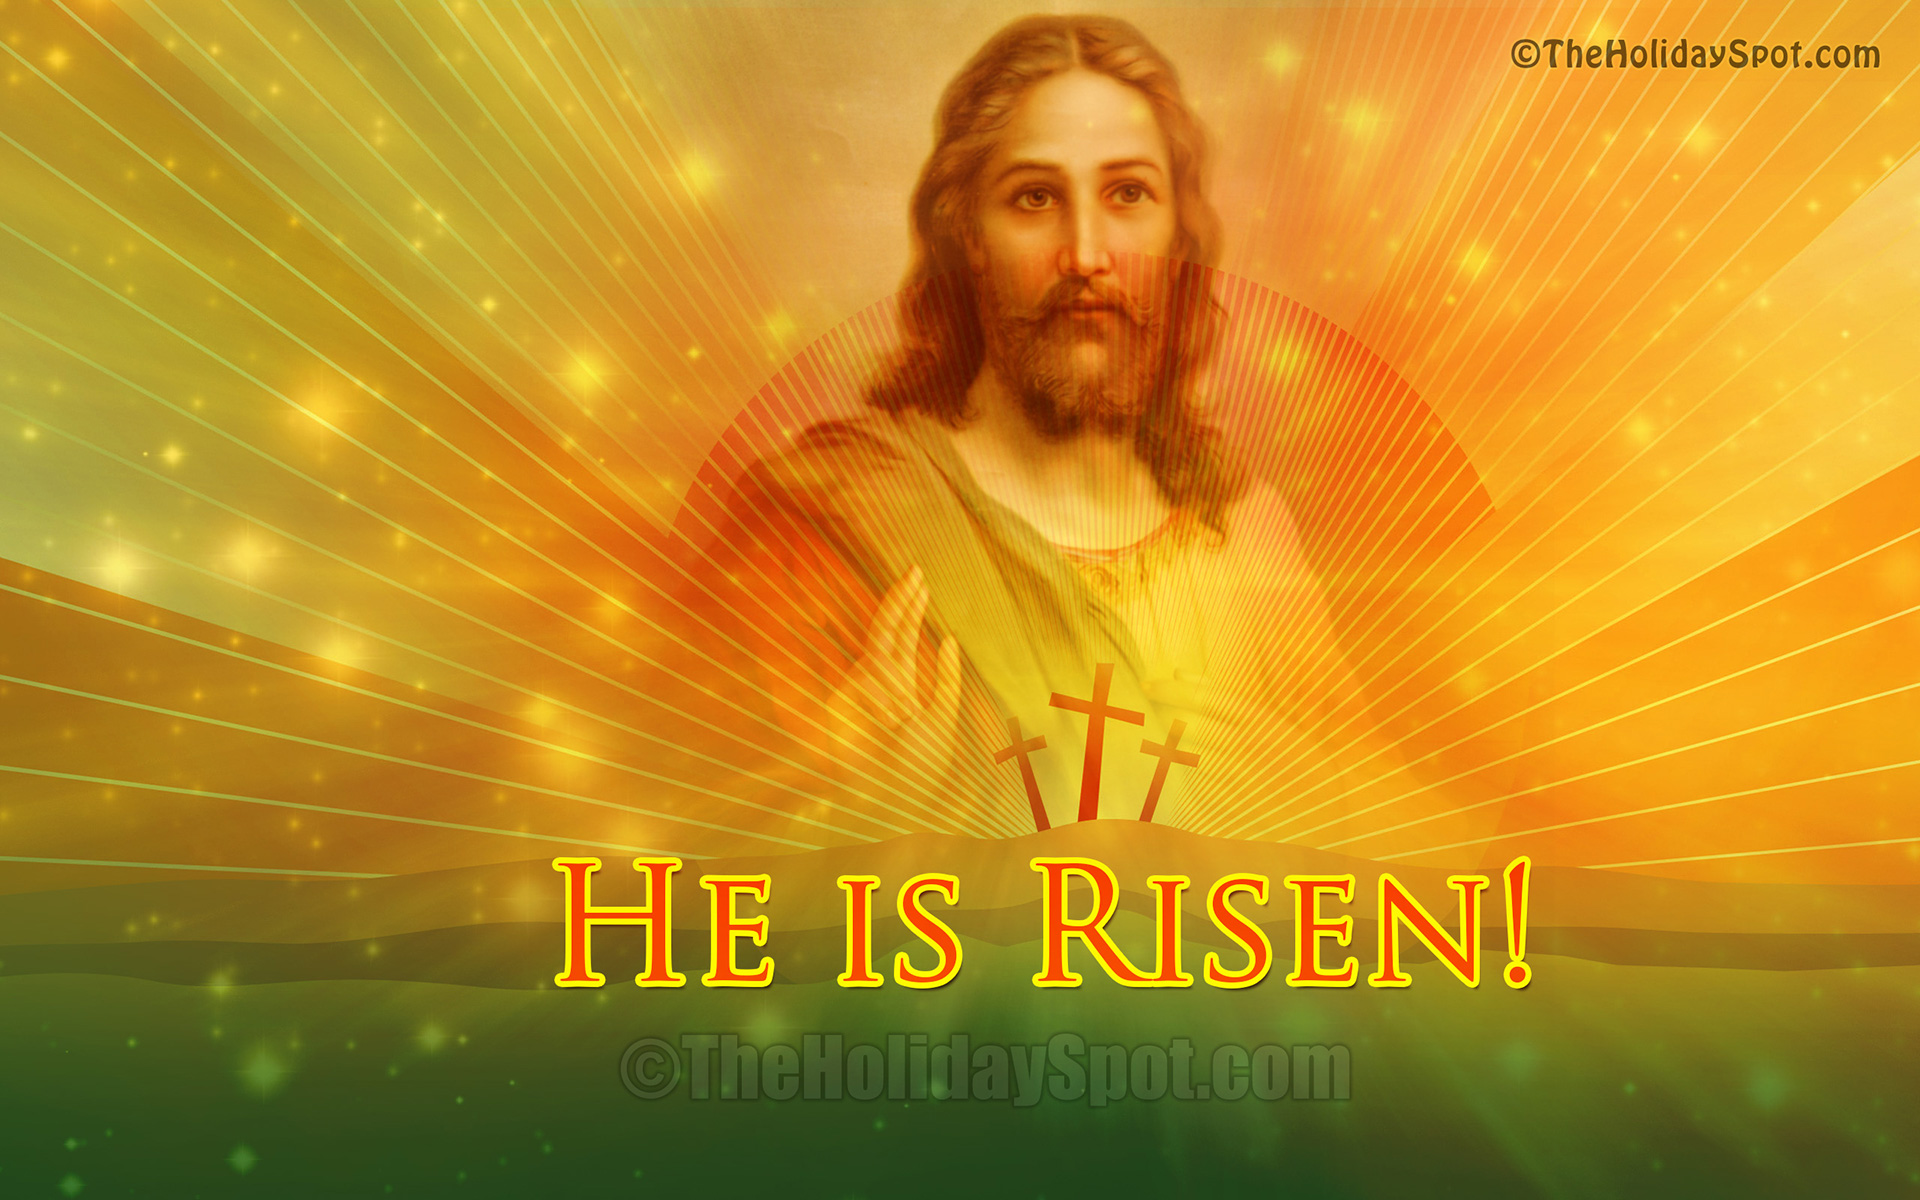 He is Risen - Easter Wallpaper of Jesus